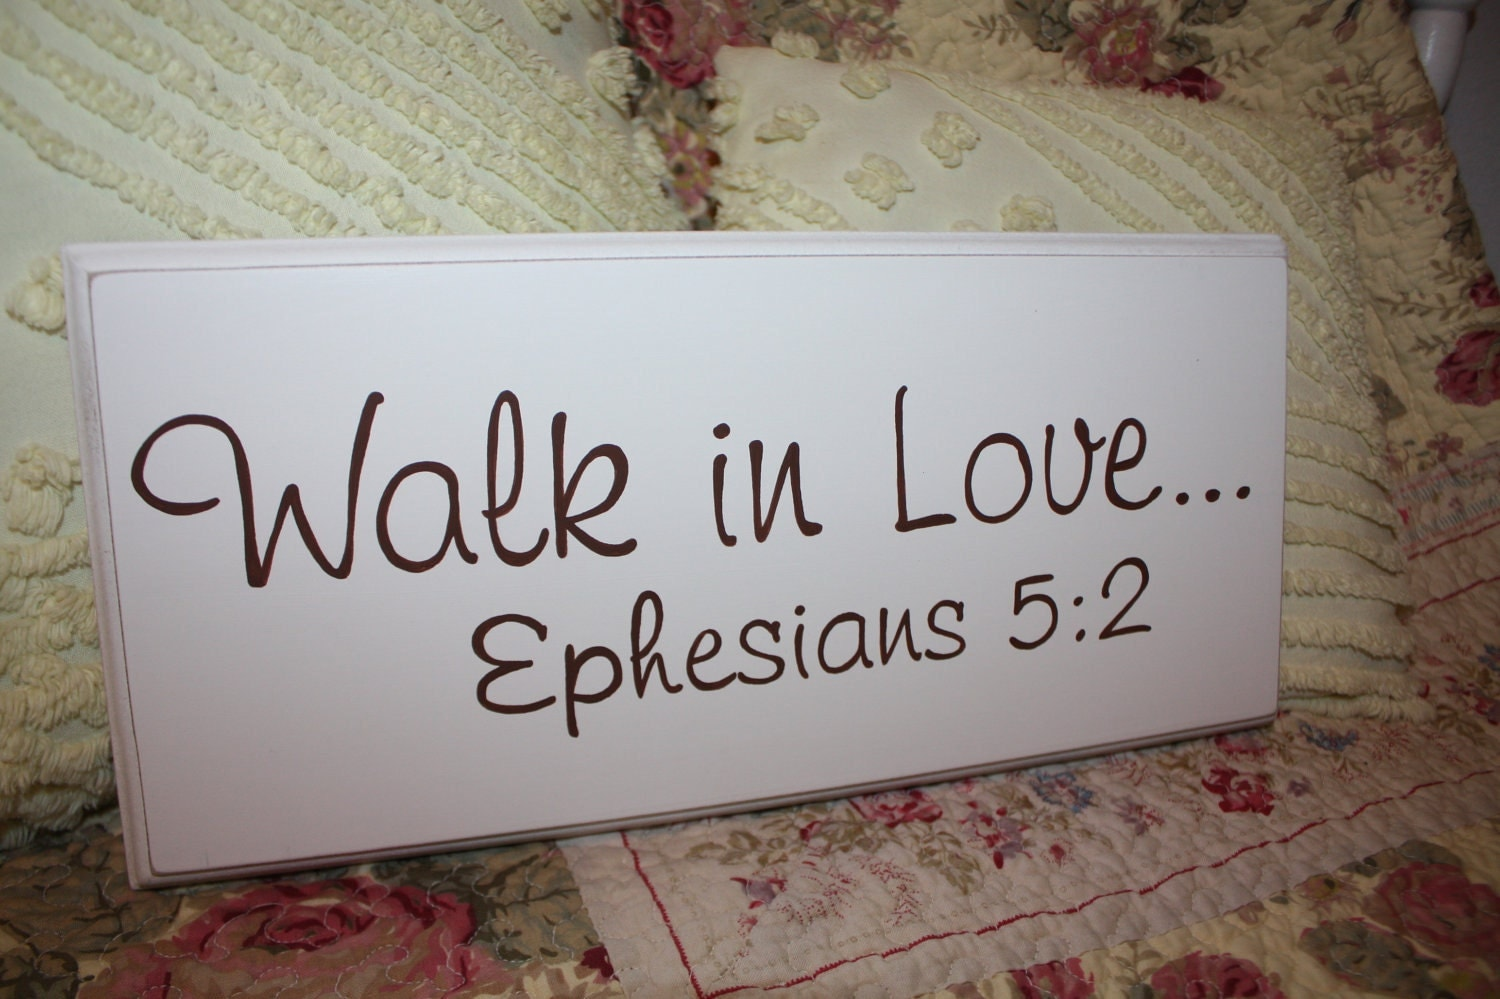 Walk in Love Ephesians 5:2 Wood Sign Handcrafted